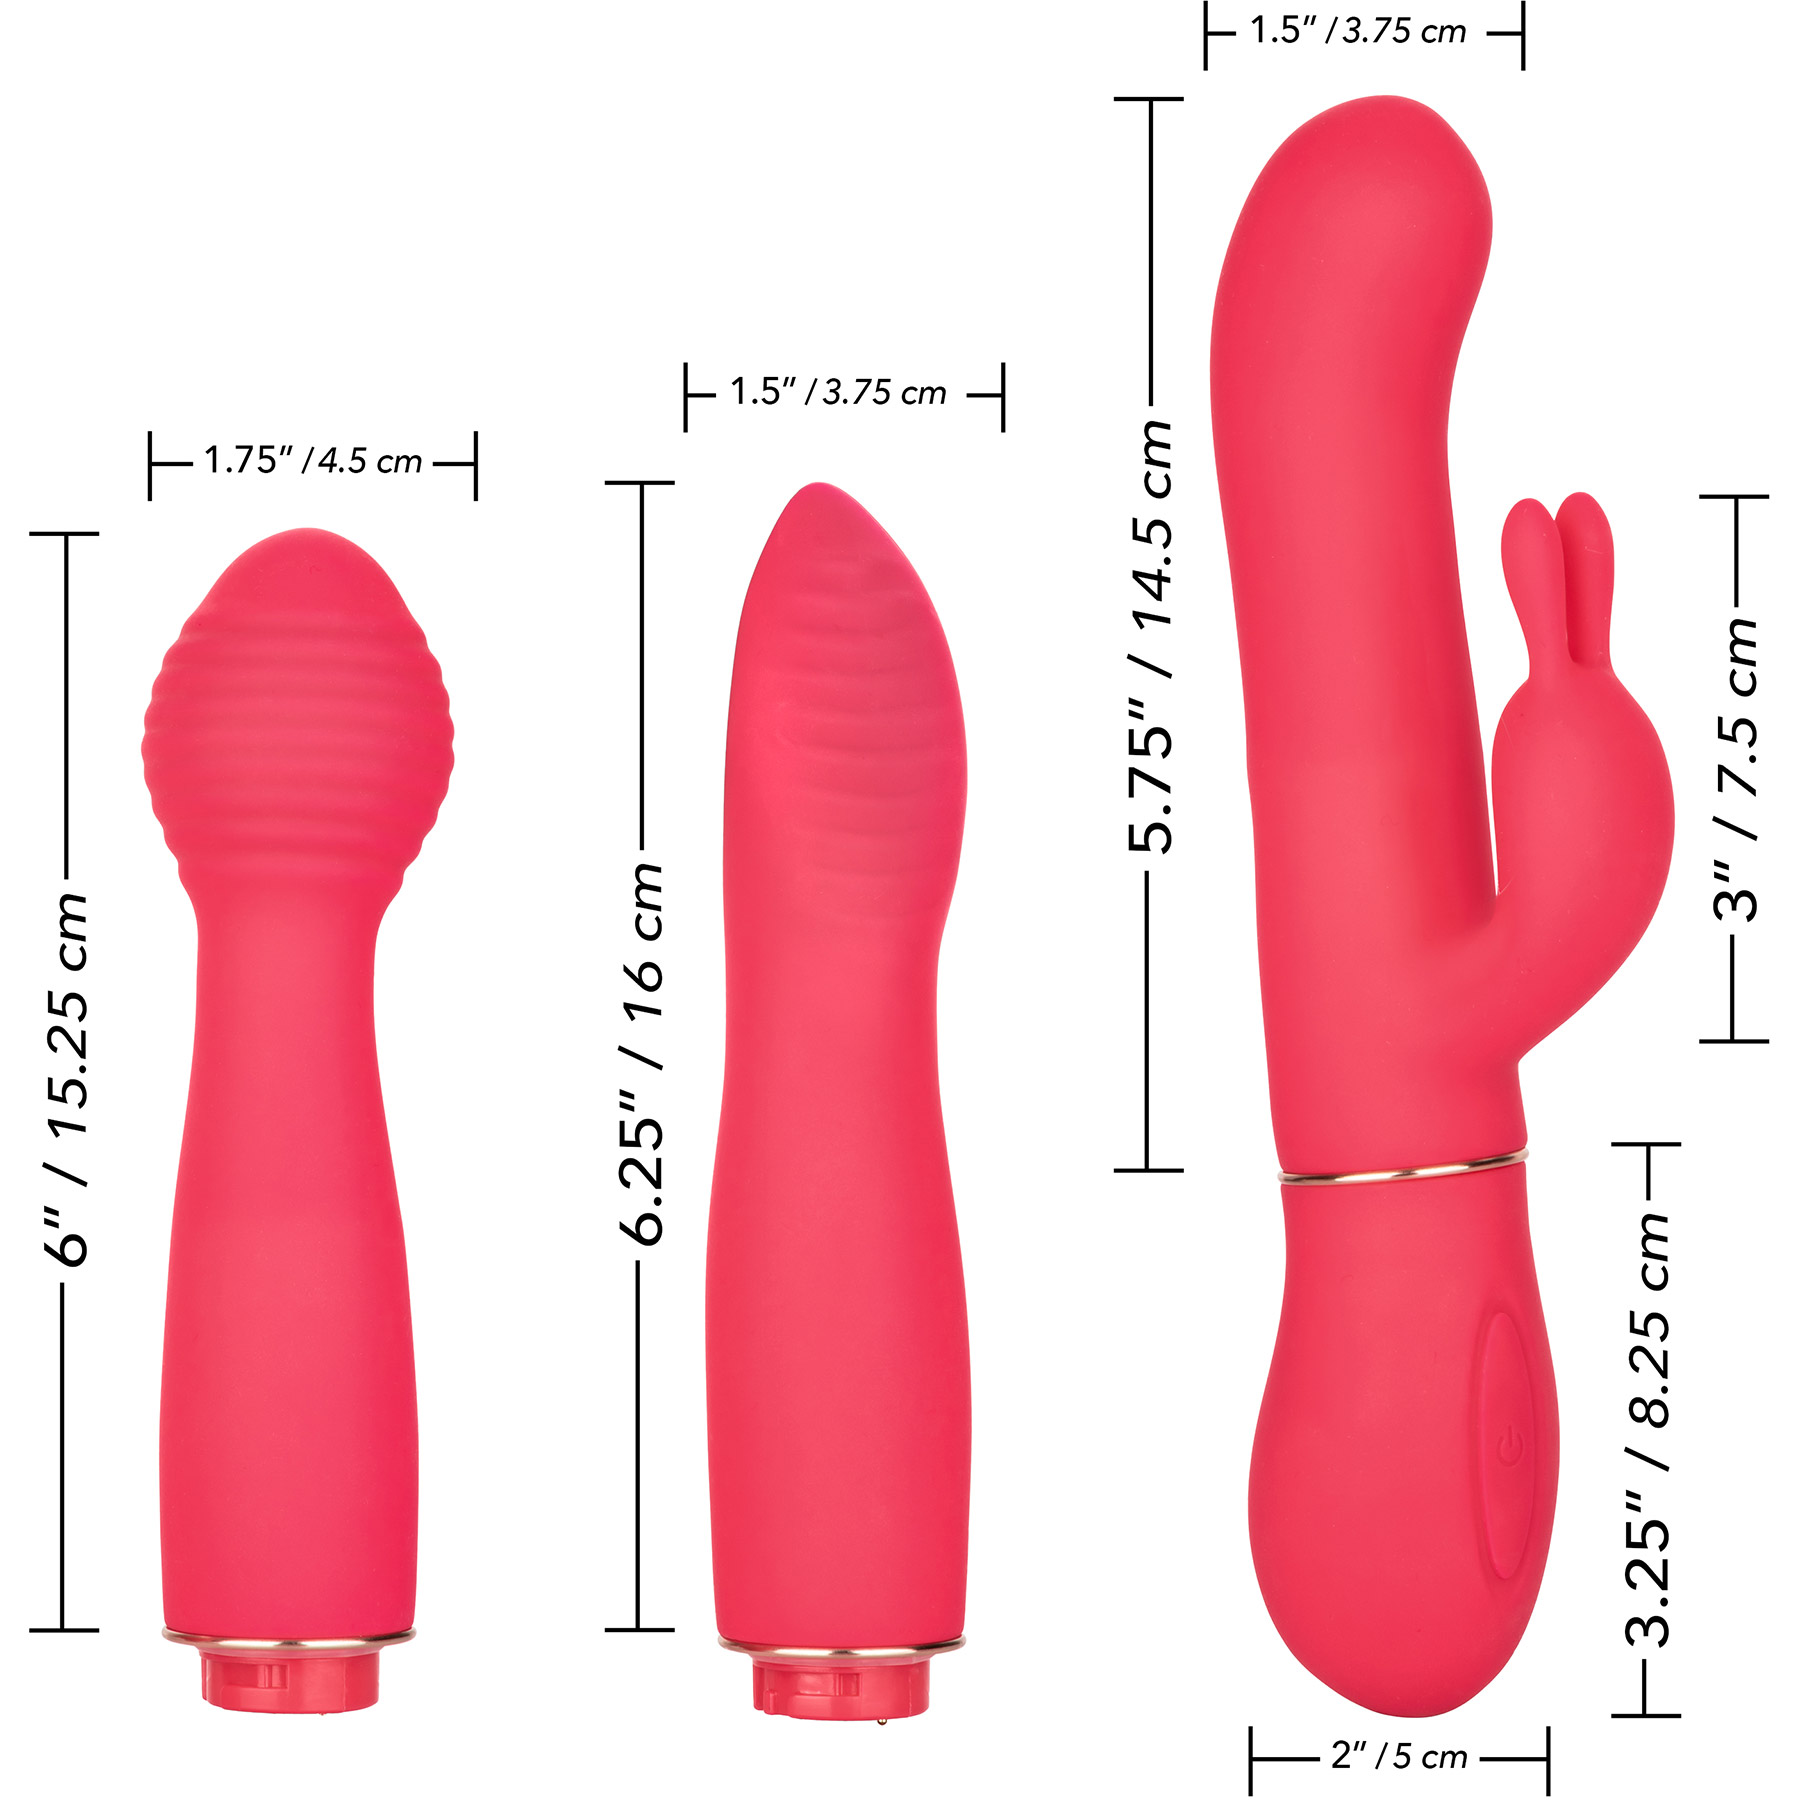 In Touch Dynamic Trio Power Base With 3 Versatile Silicone Vibrating Attachments - Measurements